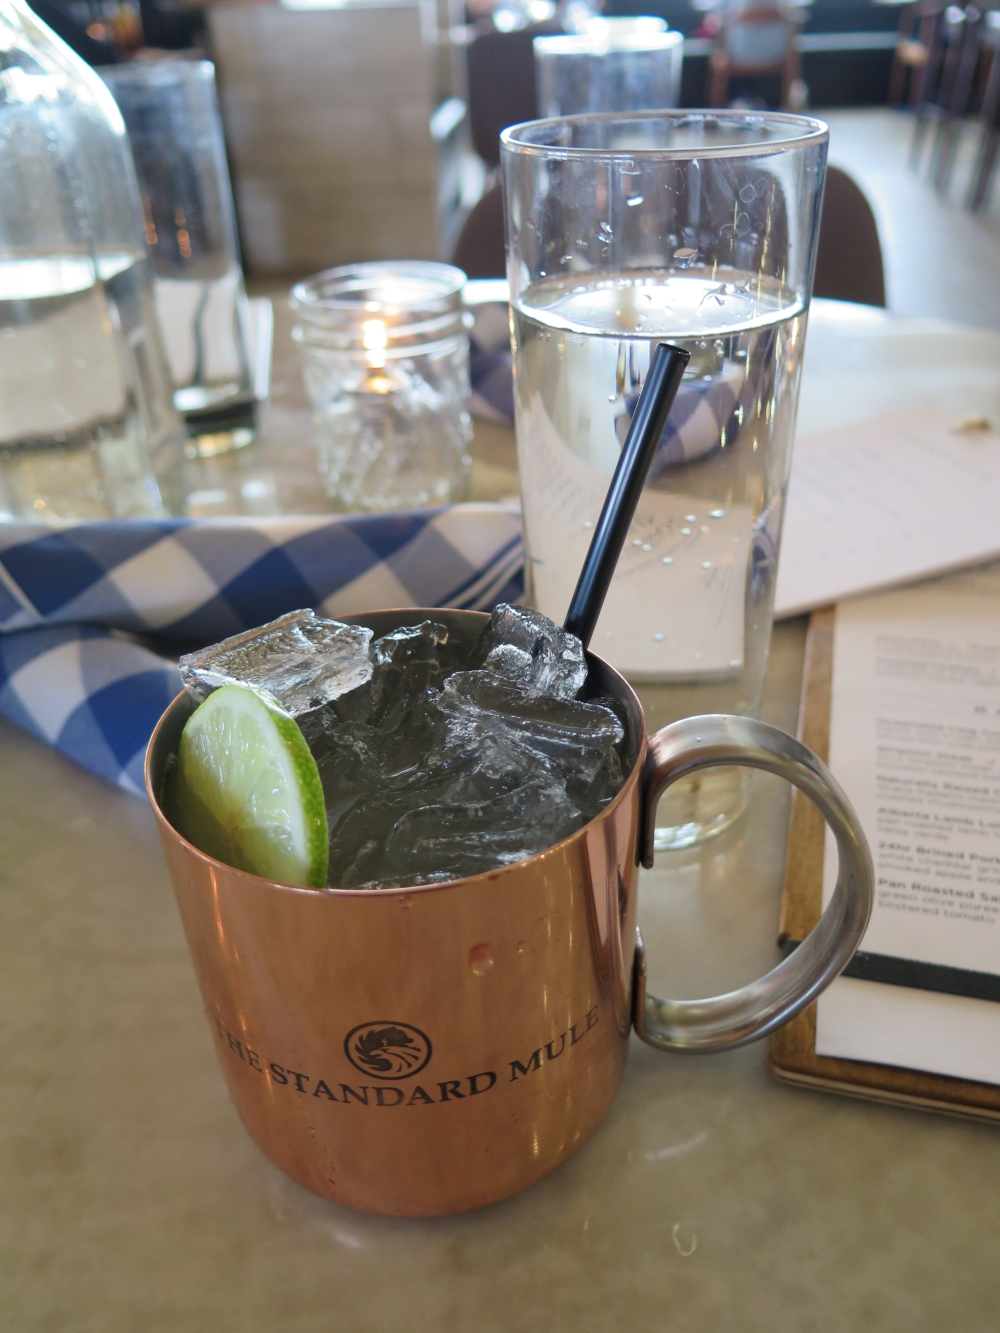 Starbelly Moscow Mule